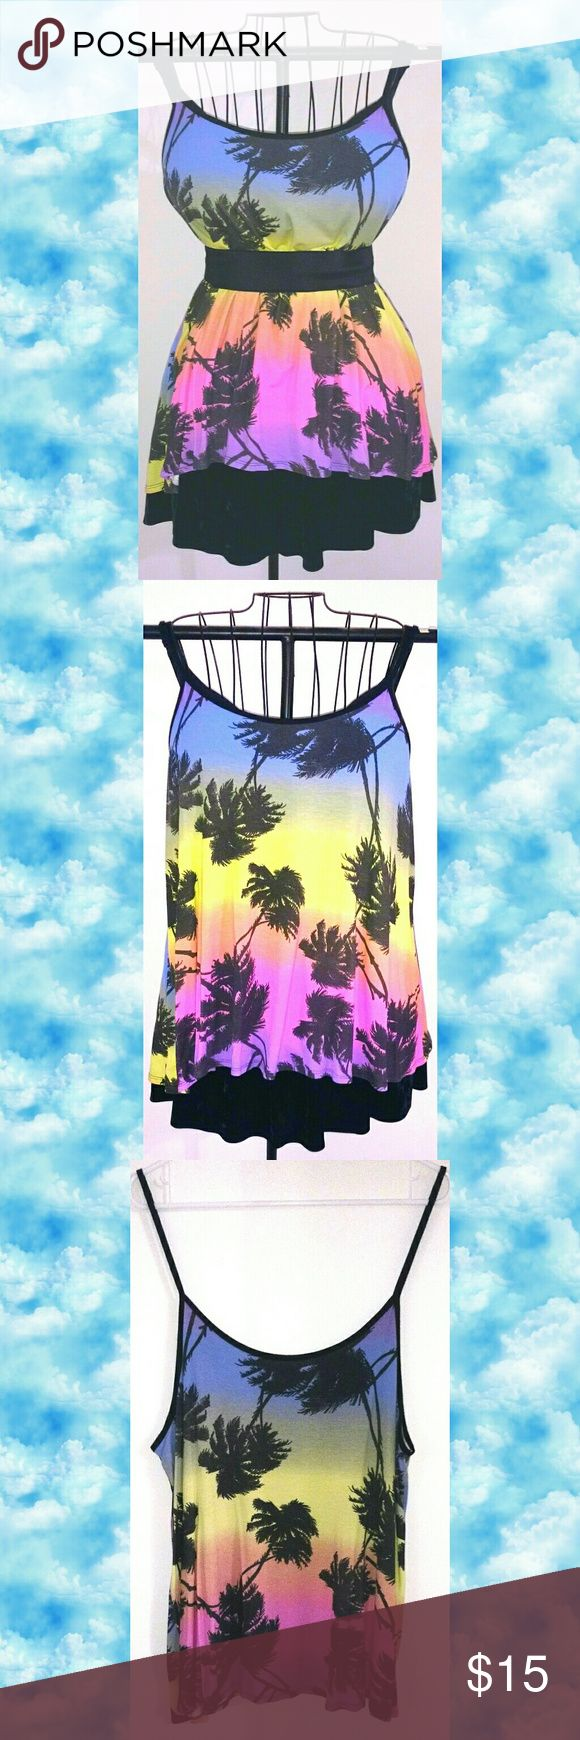 Rainbow Sky Palm Tree Tank Flowy Cami tank from Boohoo Plus in rainbow sky and black palm tree print. Black spaghetti straps and trim.   Marked as a US 14 because Boohoo's sizing is wildly inconsistent, but it absolutely fits like a 2X/US 20.   Black velvet skirt also available-- check my closet for the listing! (Belt not included.) Boohoo Plus Tops